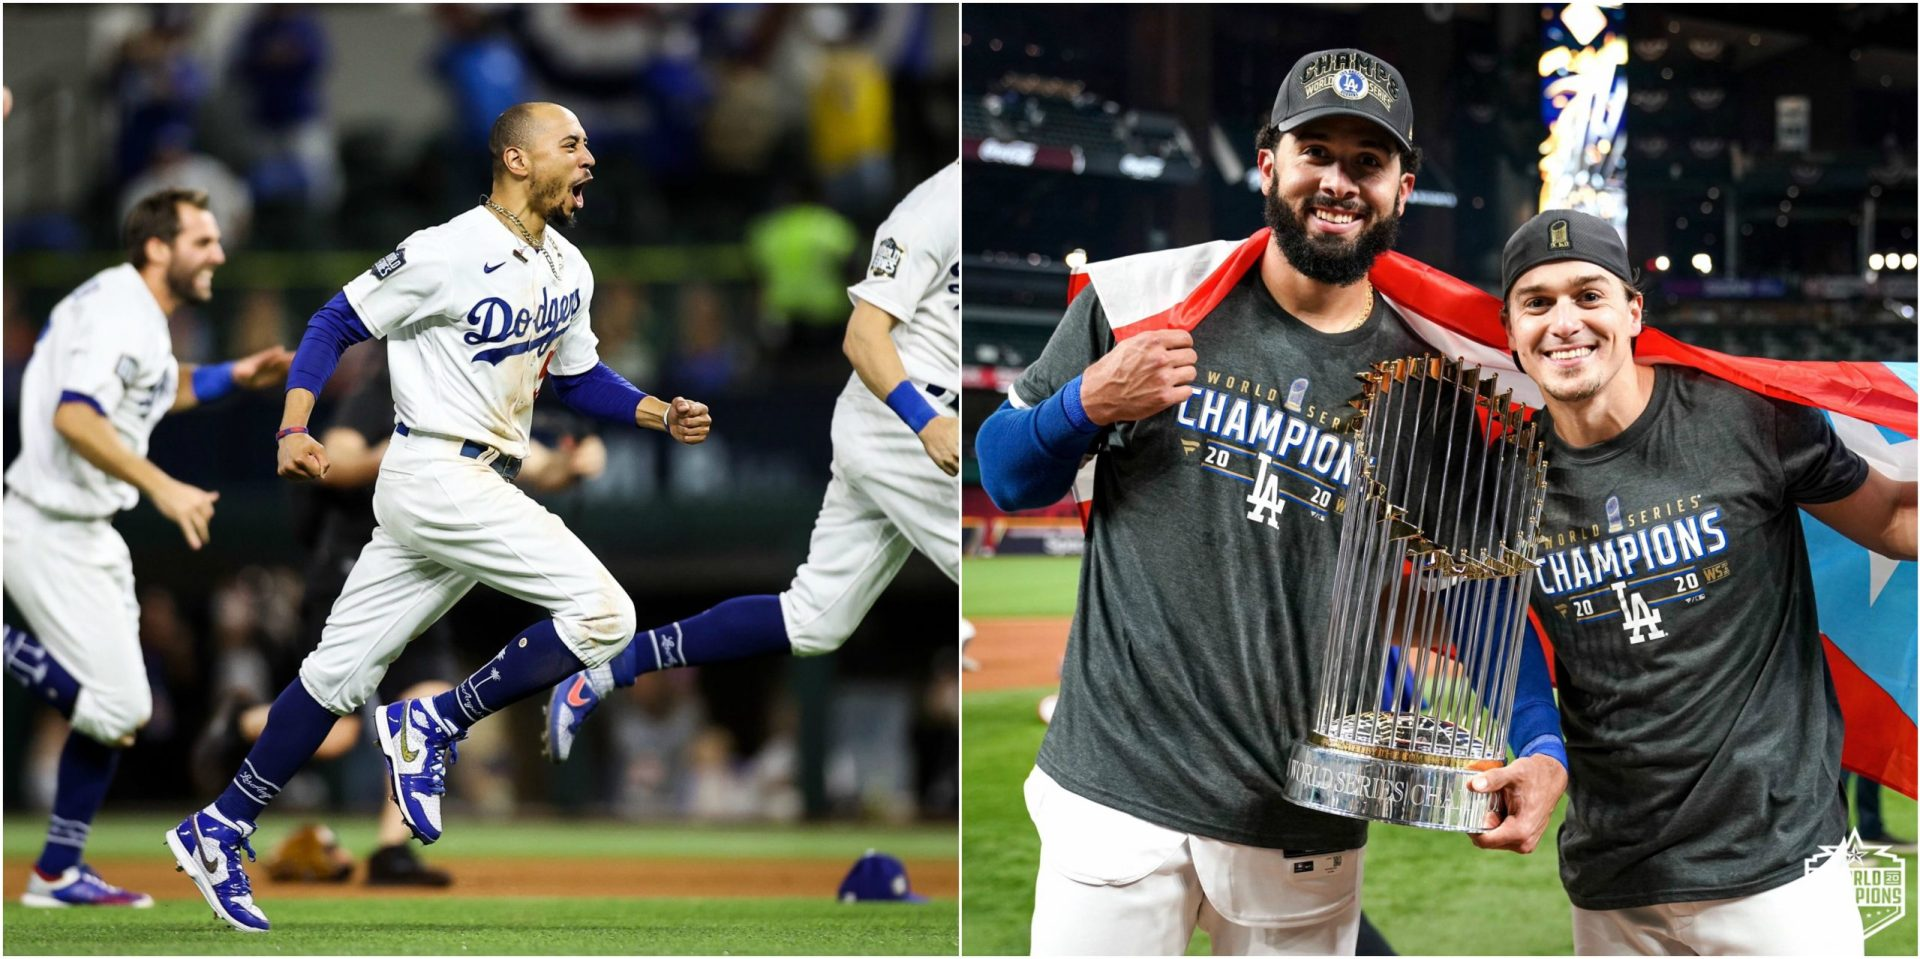 Los Angeles Dodgers defeat Tampa Bay Rays 3-1 to clinch 7th World Series title - THE SPORTS ROOM